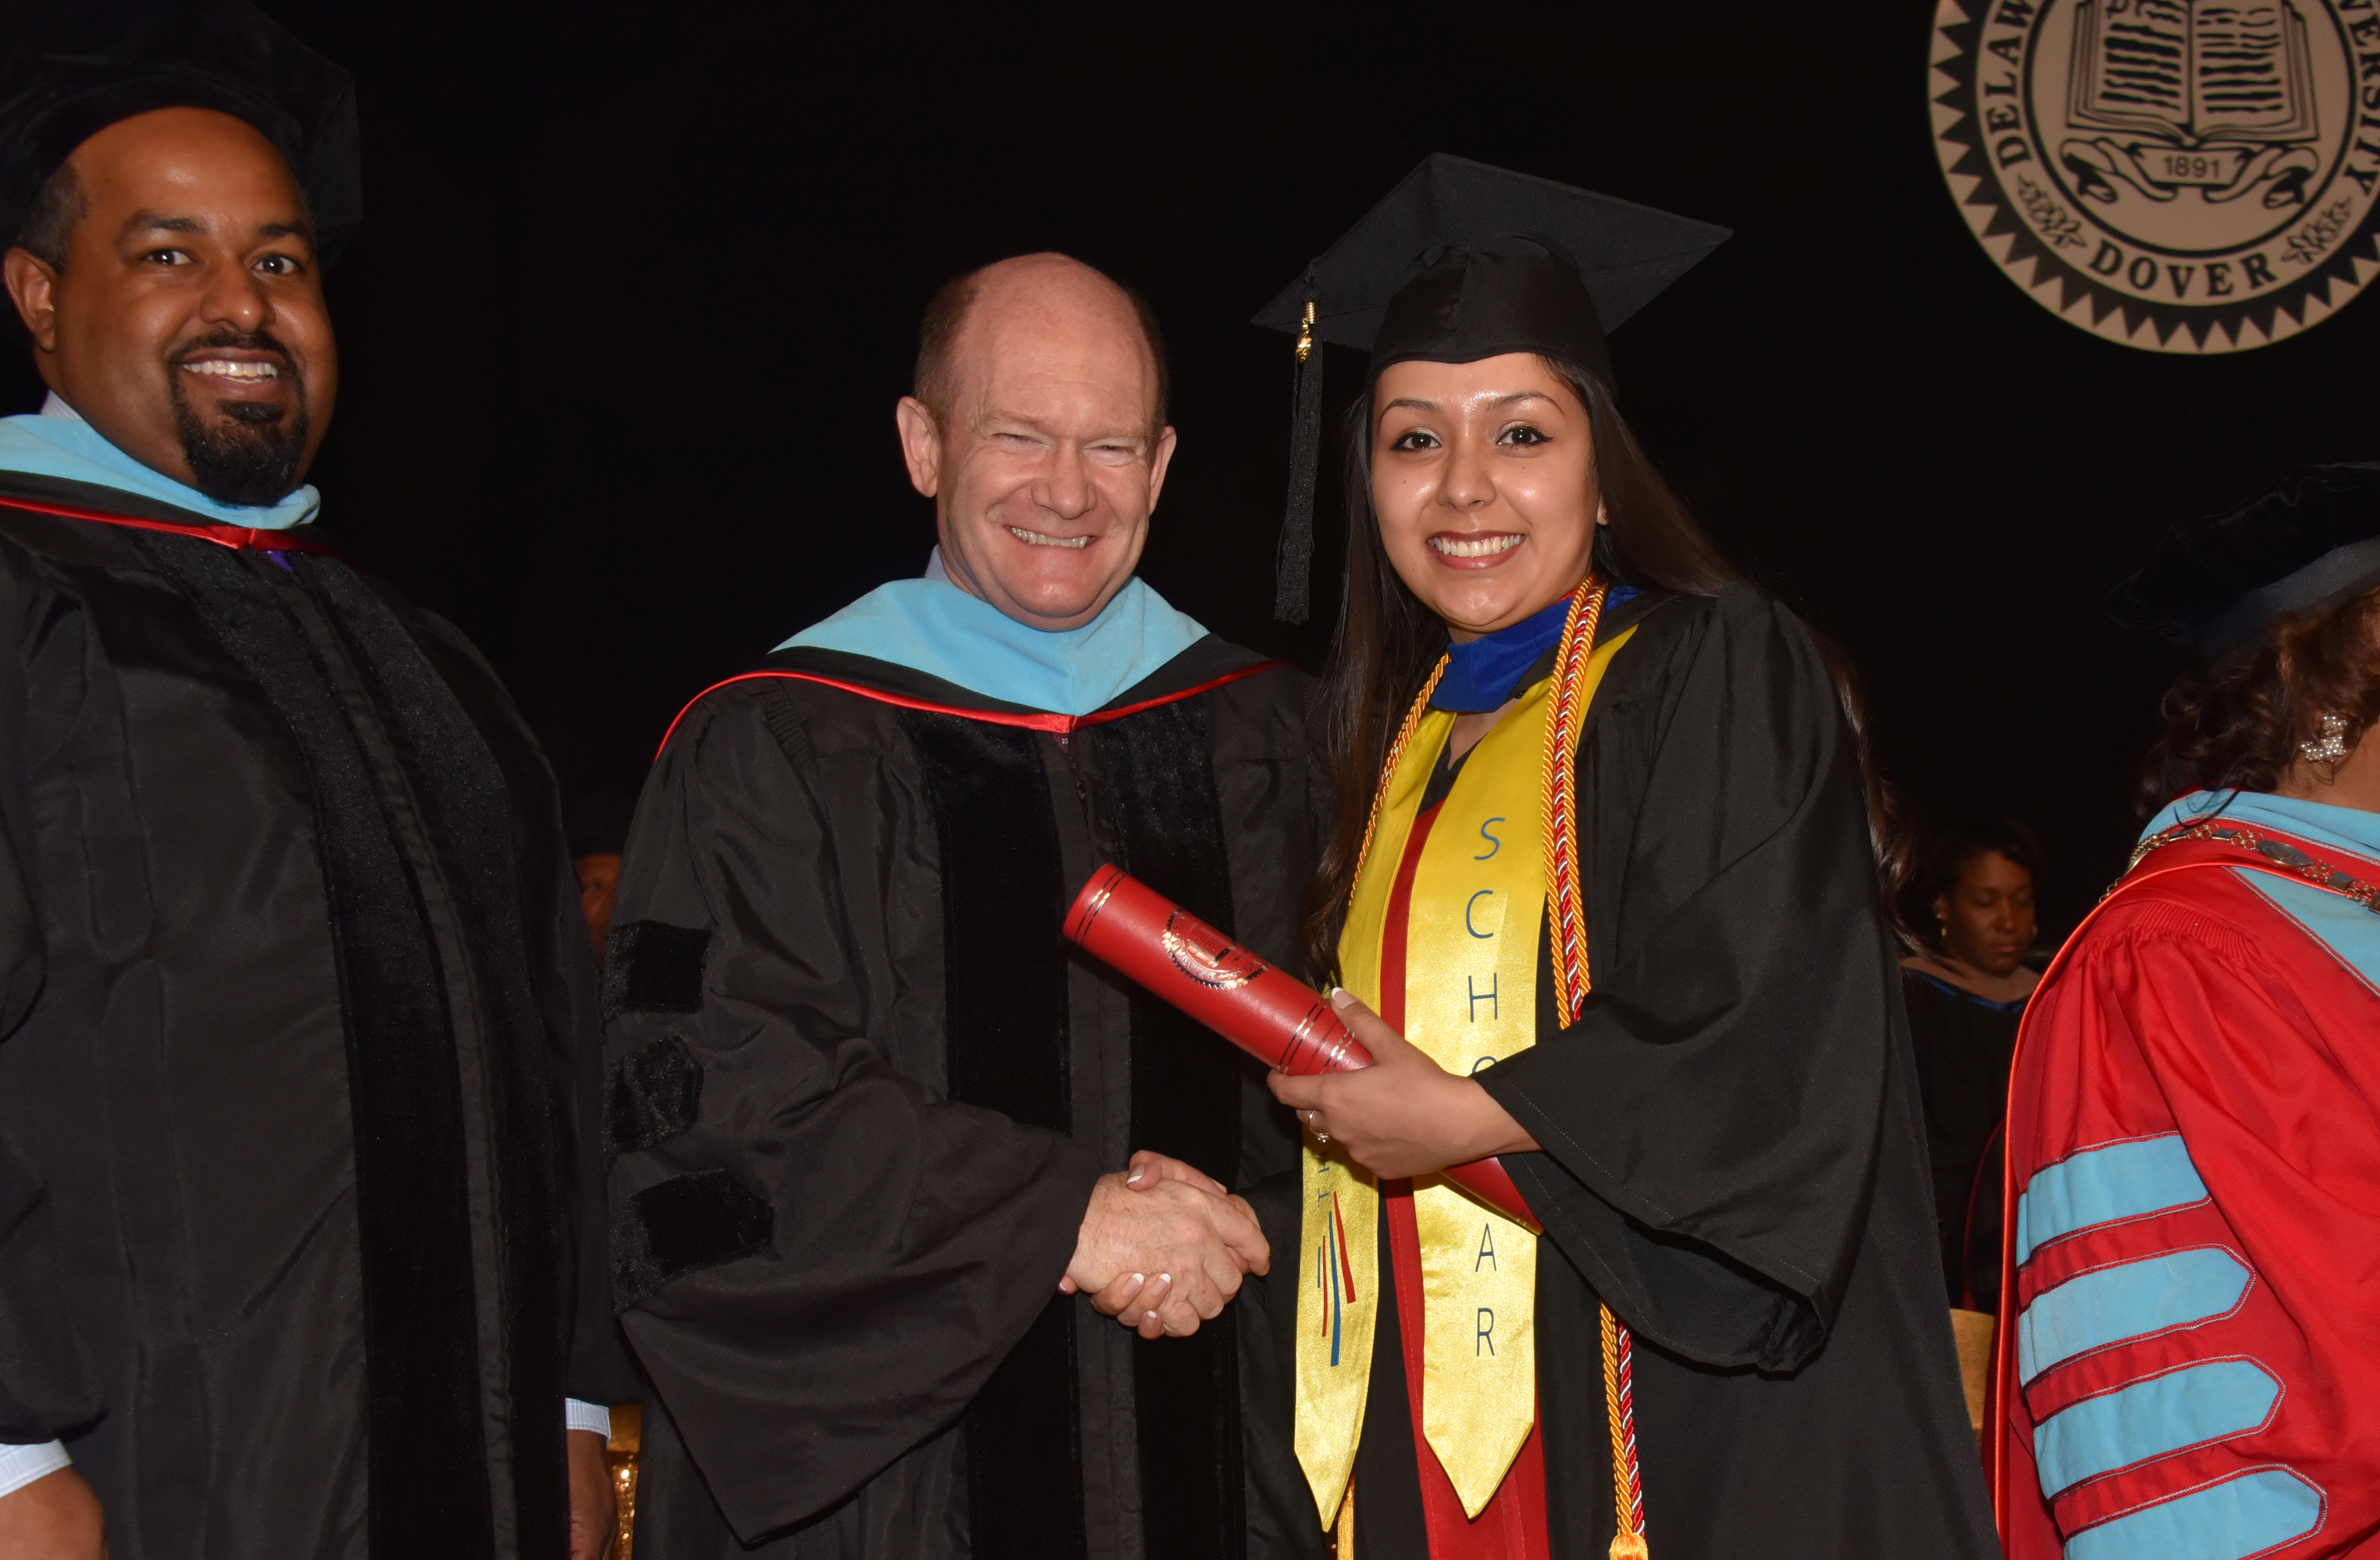 U.S. Sen. Chris Coons poses with Dulce Guerrero at the Dec. 14 Commencement Ceremony, where she became the first Opportunity Scholarship Dreamer to receive her bachelor's degree at Delaware State University.